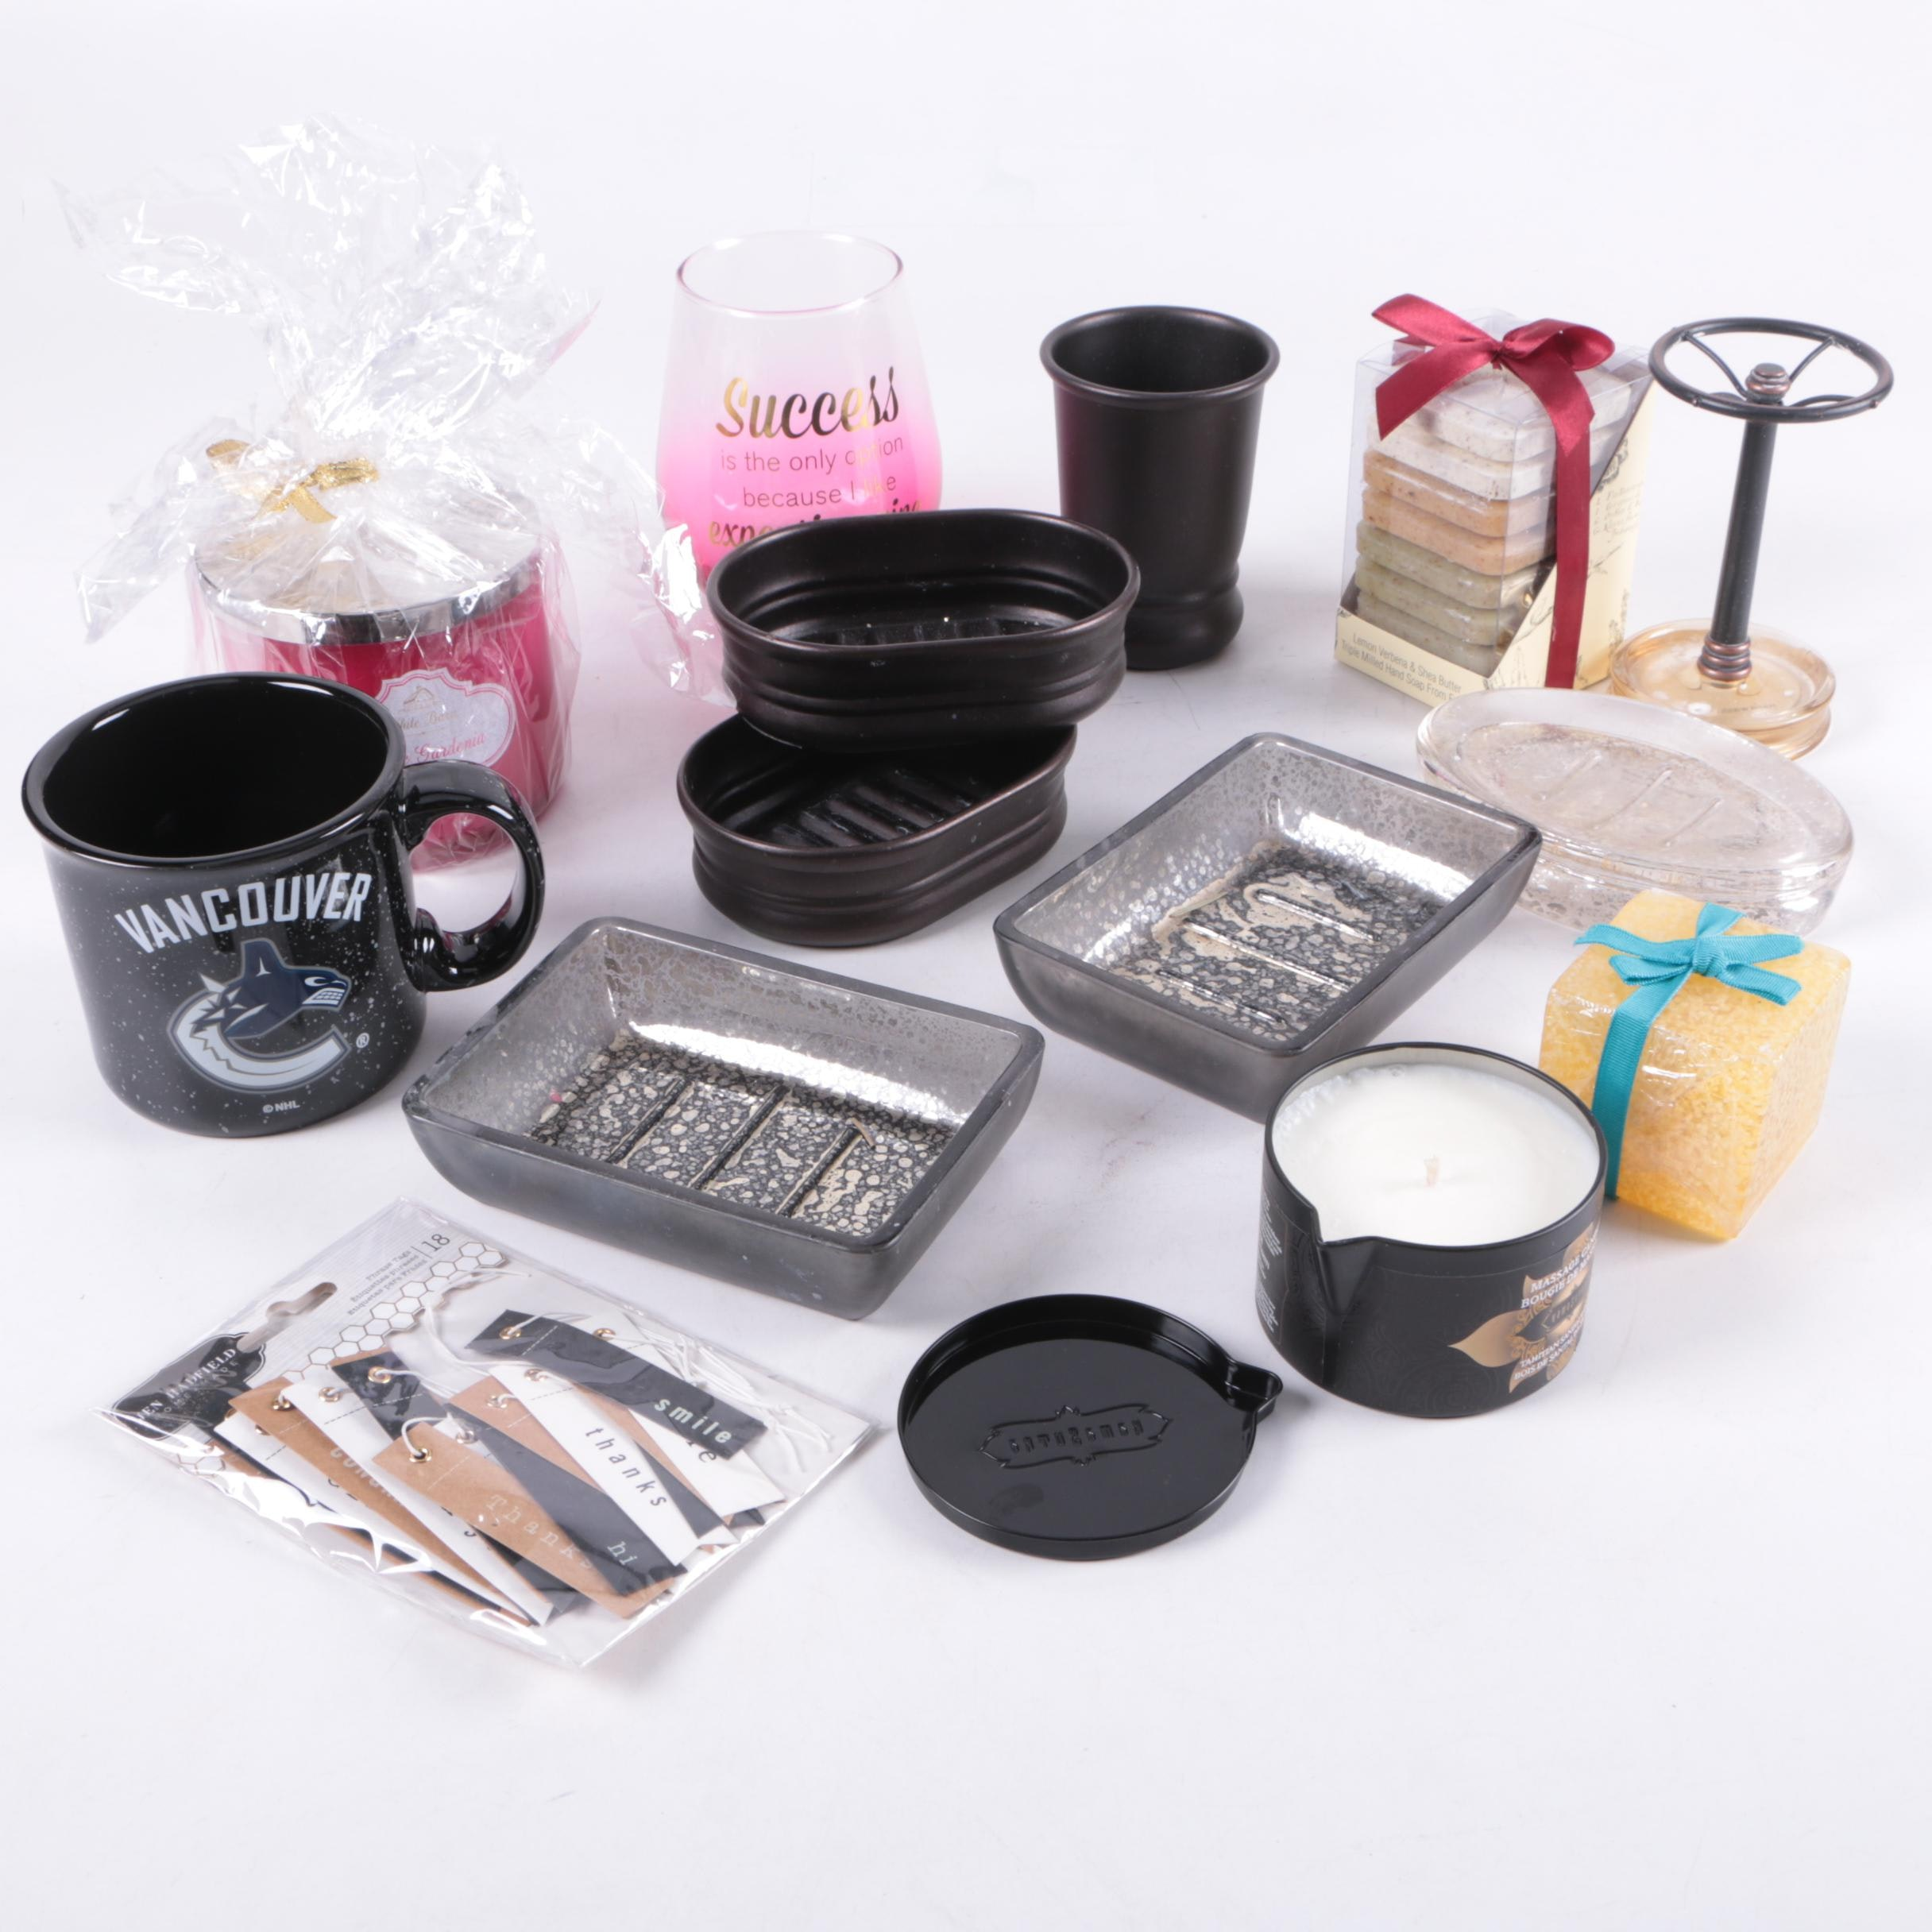 Bathroom Accessories Including Soap Dishes, Cups and a Toothbrush Holder